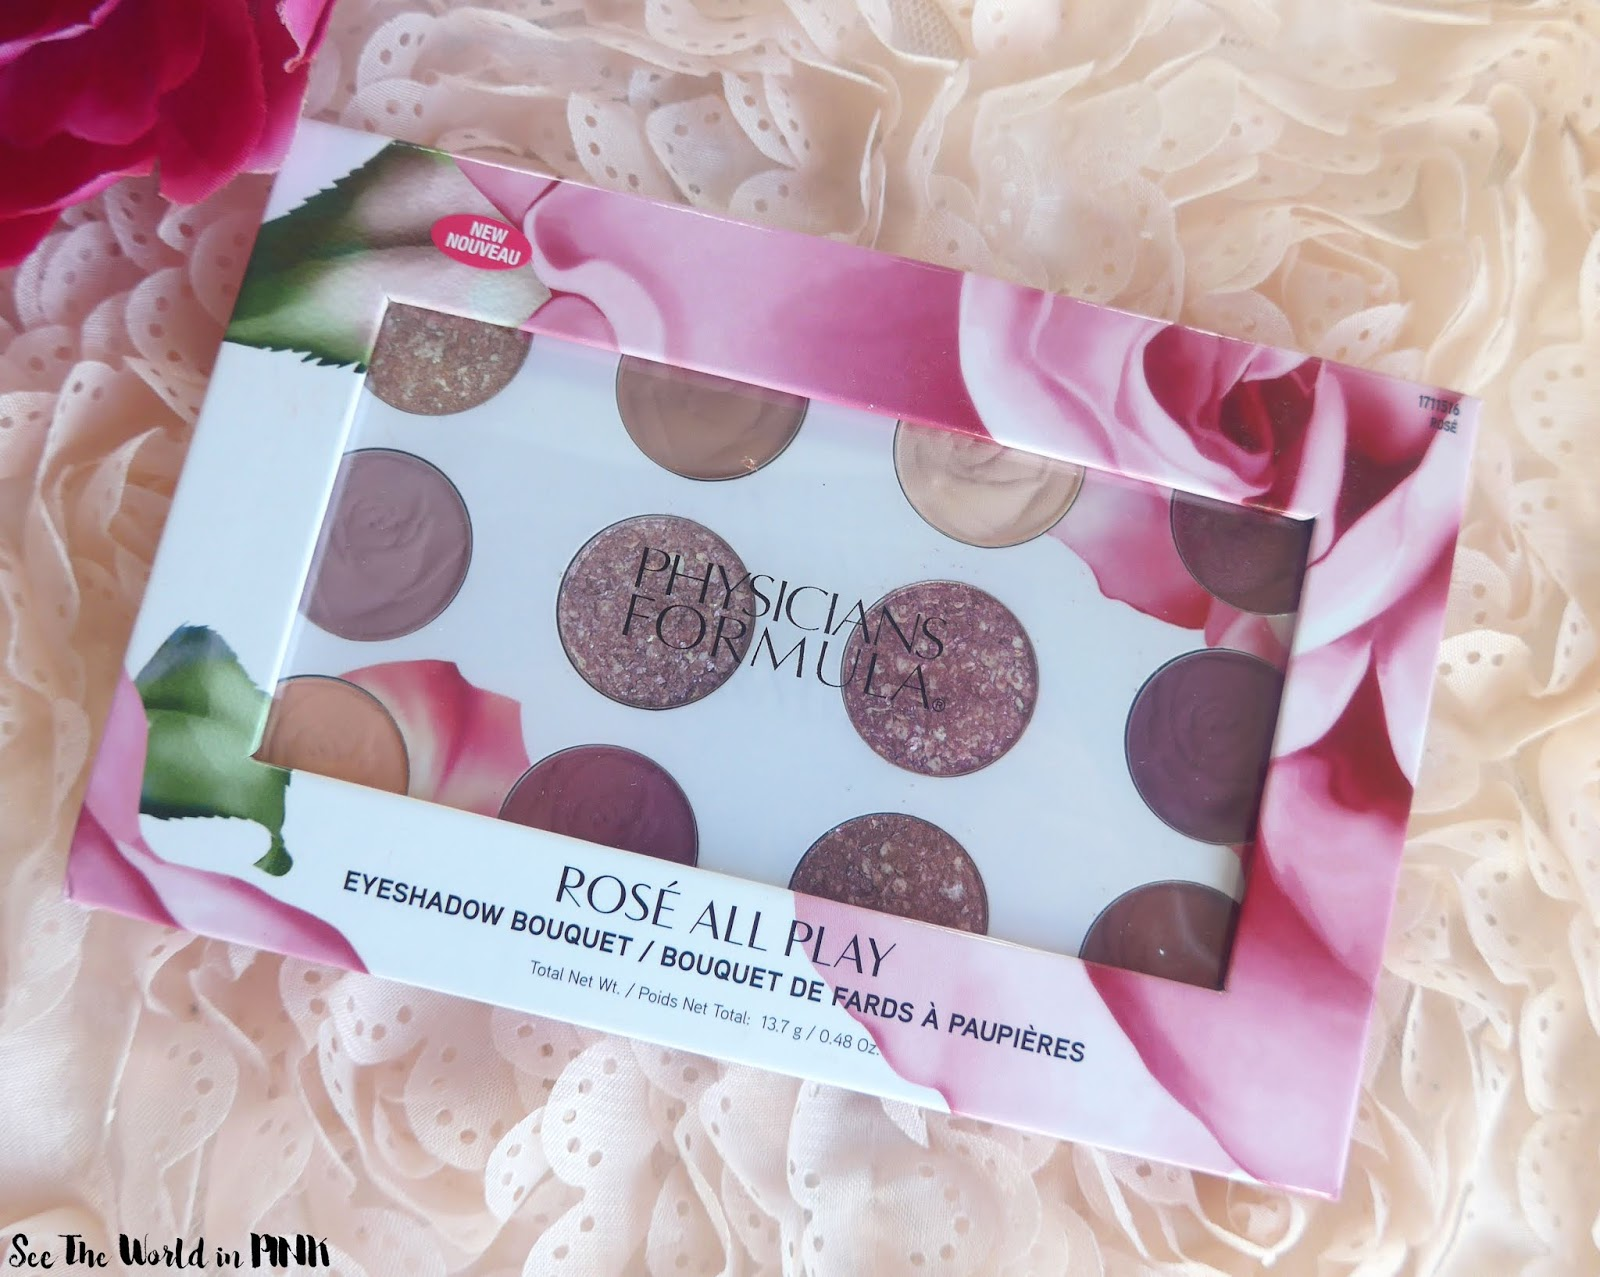 Physicians Formula New Rose All Day Products - Eyeshadow Bouquet and Set & Glow Powder and Balm